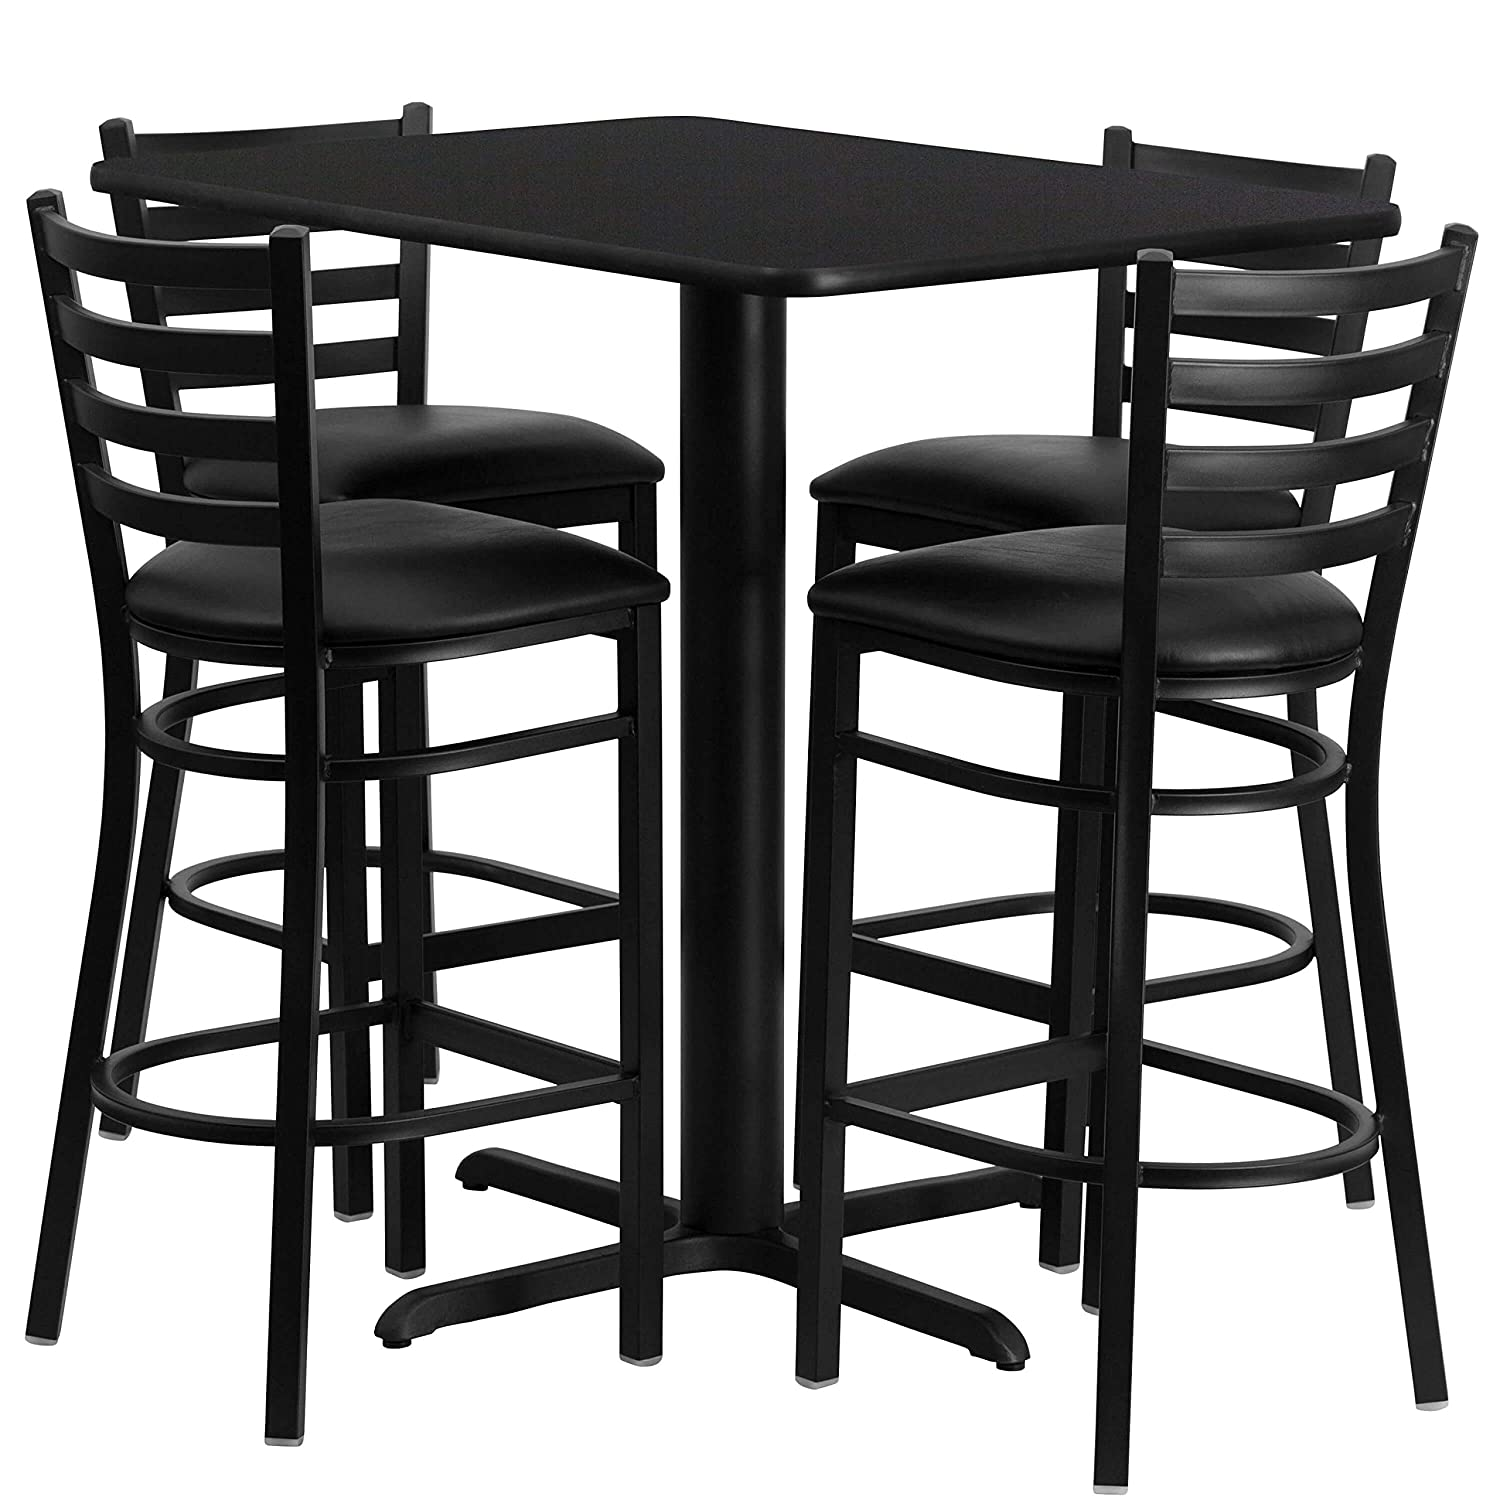 Cafe Tables and Chairs - Benedict 24inch Cafe Table Set